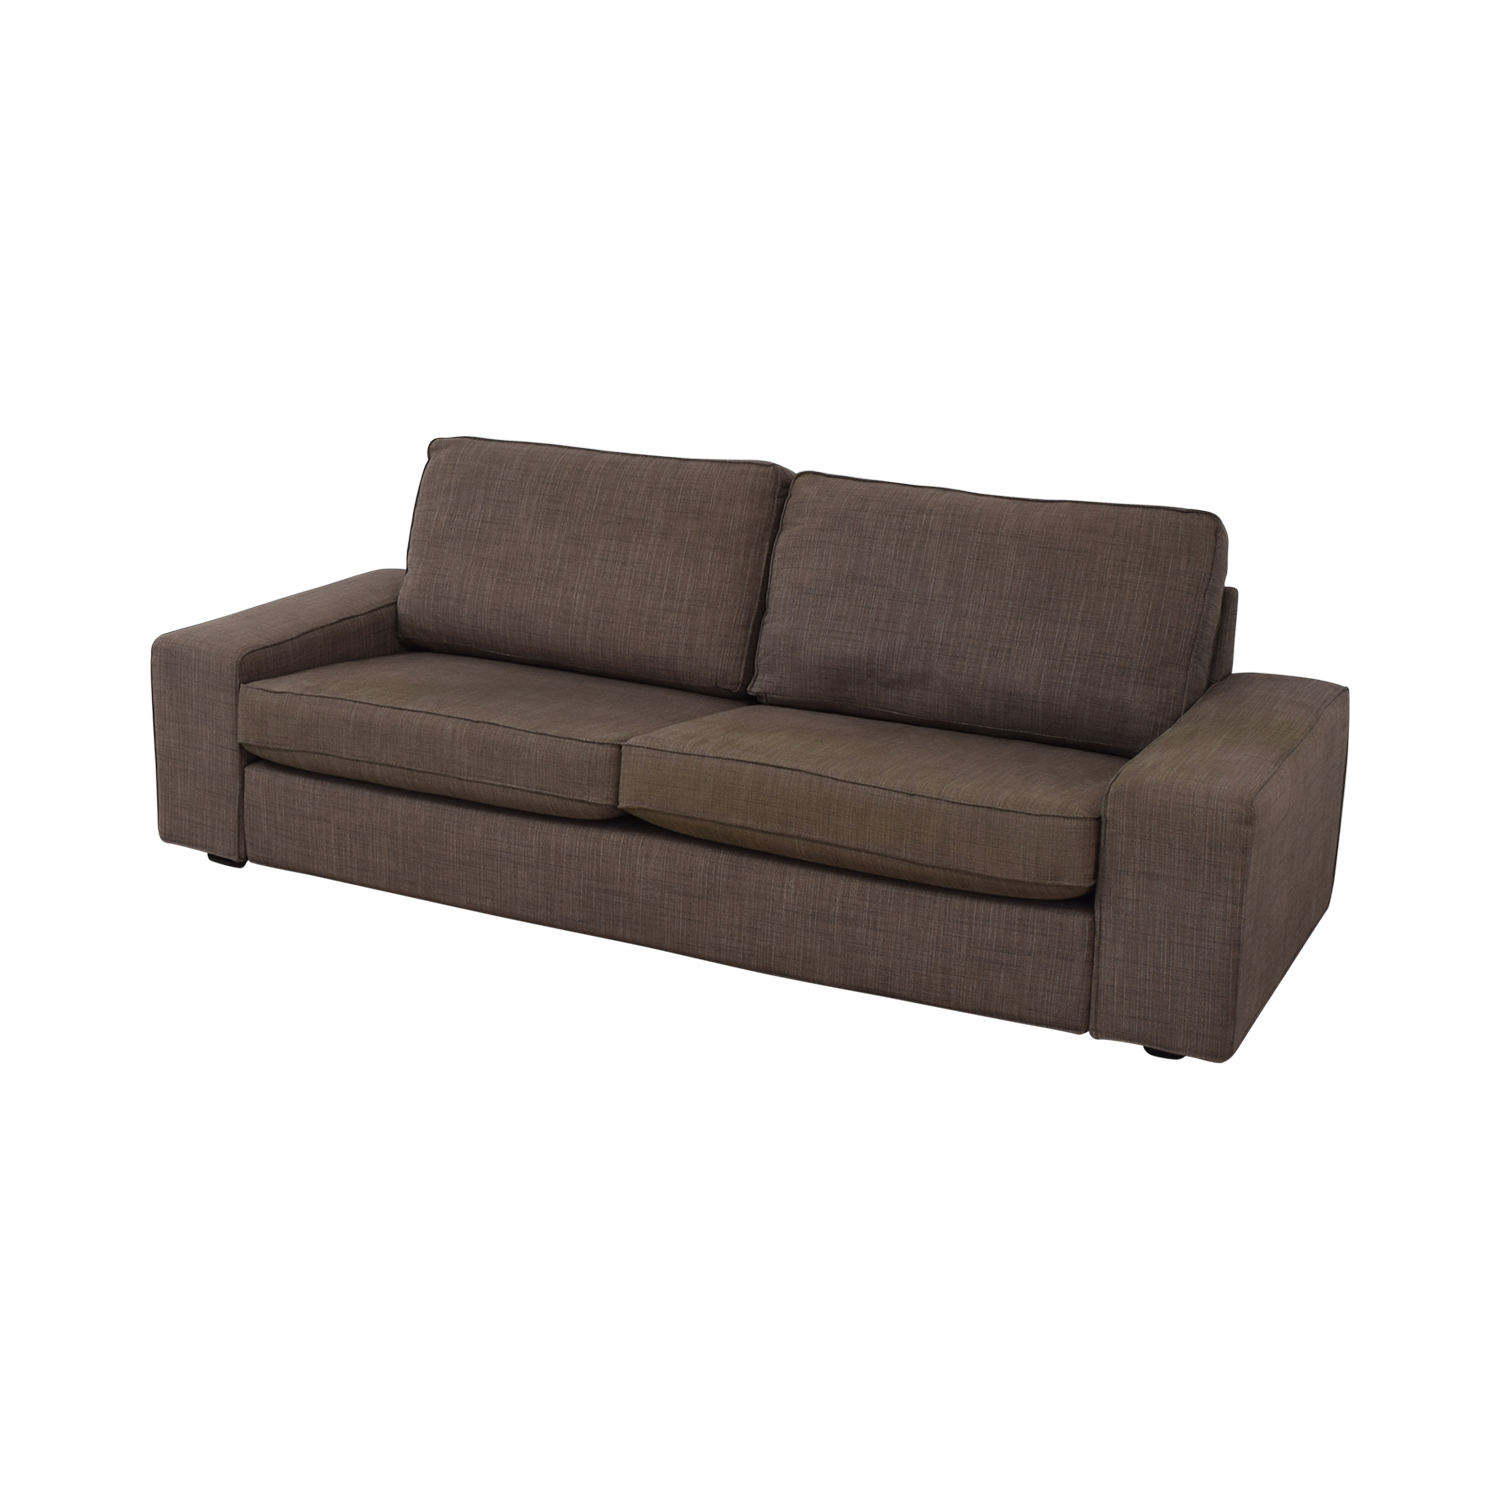 Ikea Karlstad Ecksofa Ikea Carb Sofa Vitra Large Wooden Side Table In Dark Oak By Ronan